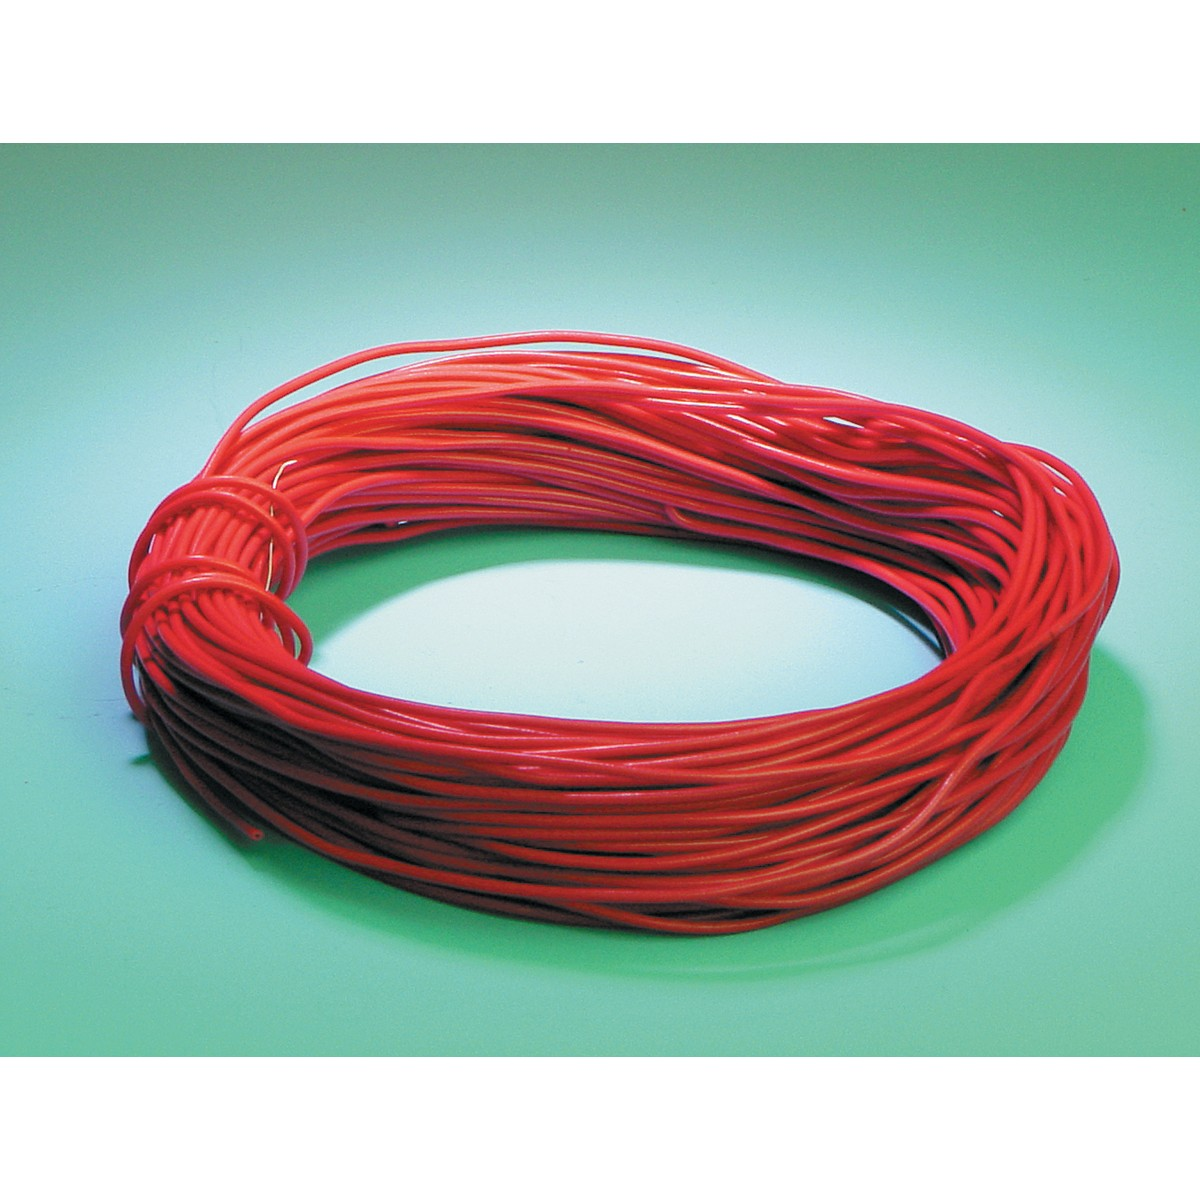 Plastic Insulated Copper Wire - Electricity - Physics